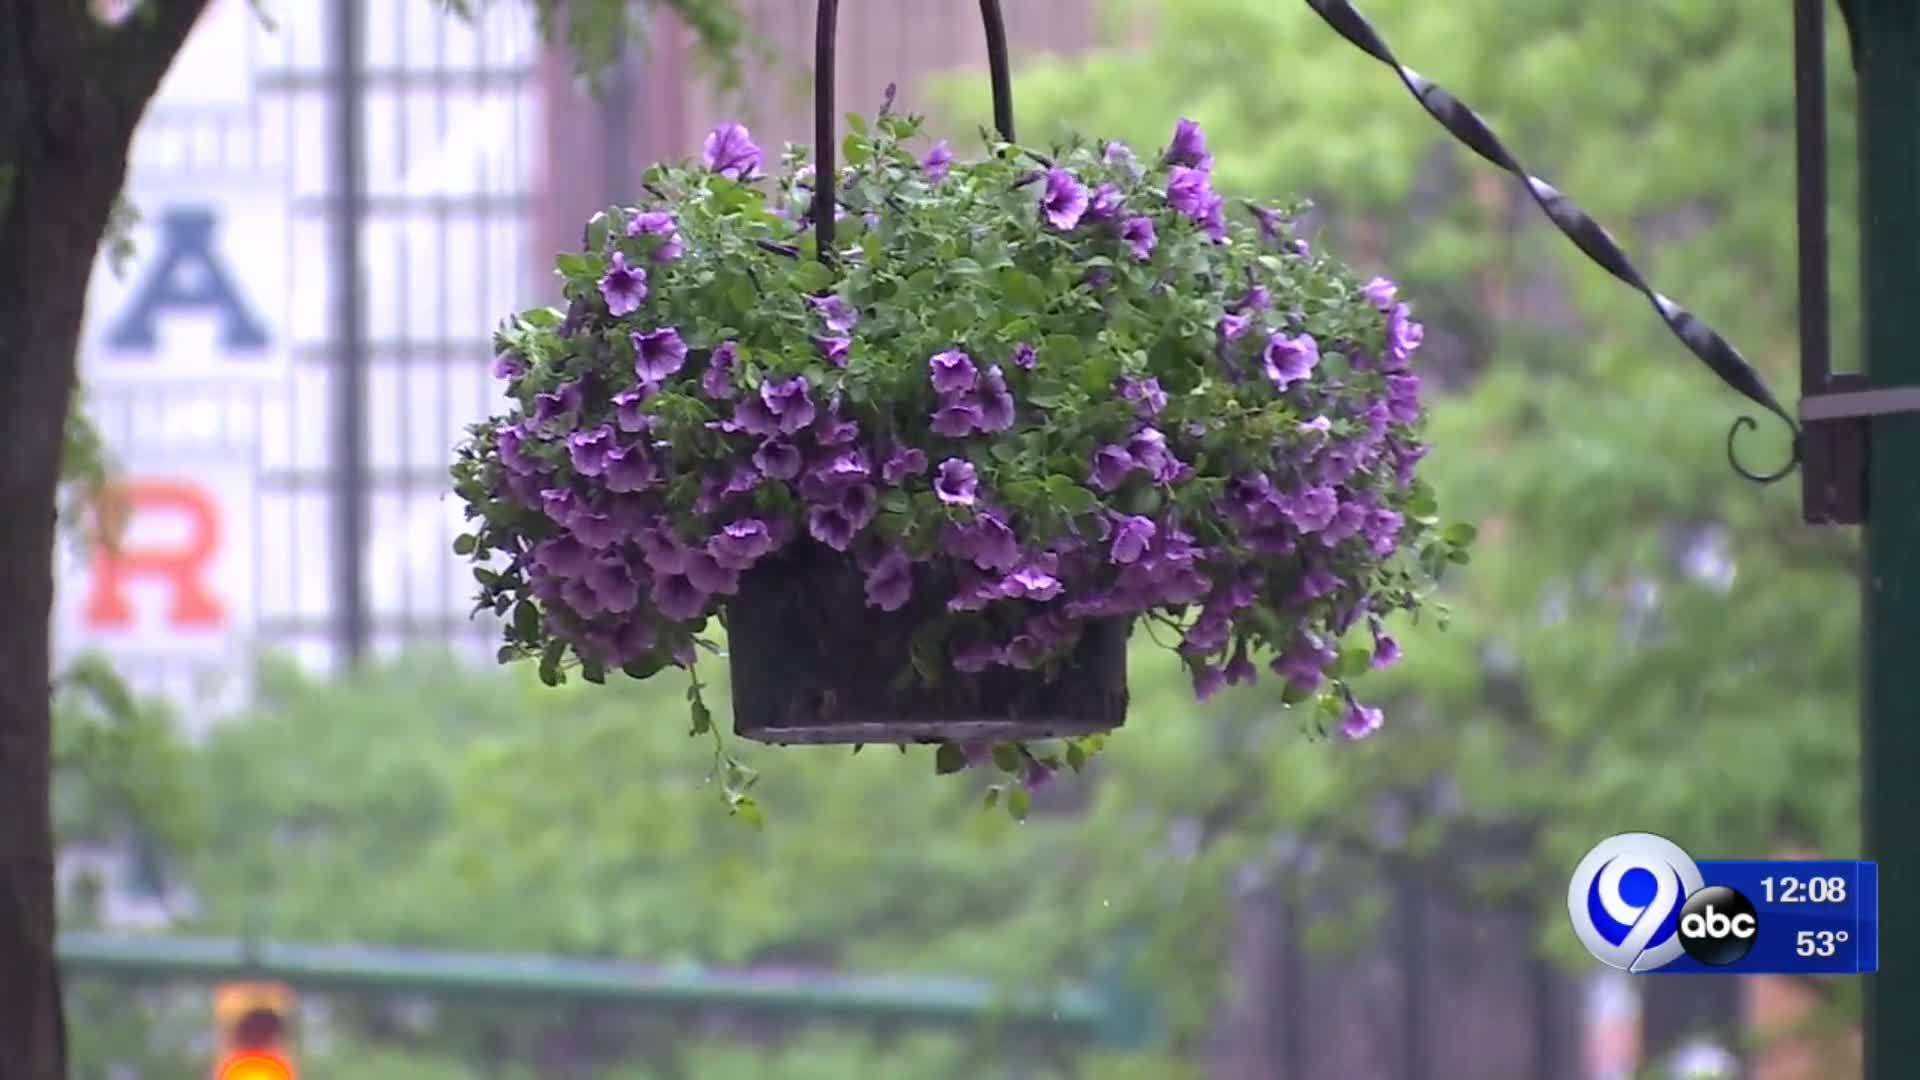 Hanging_baskets_bring_the_blooms_to_Down_8_20190528162926